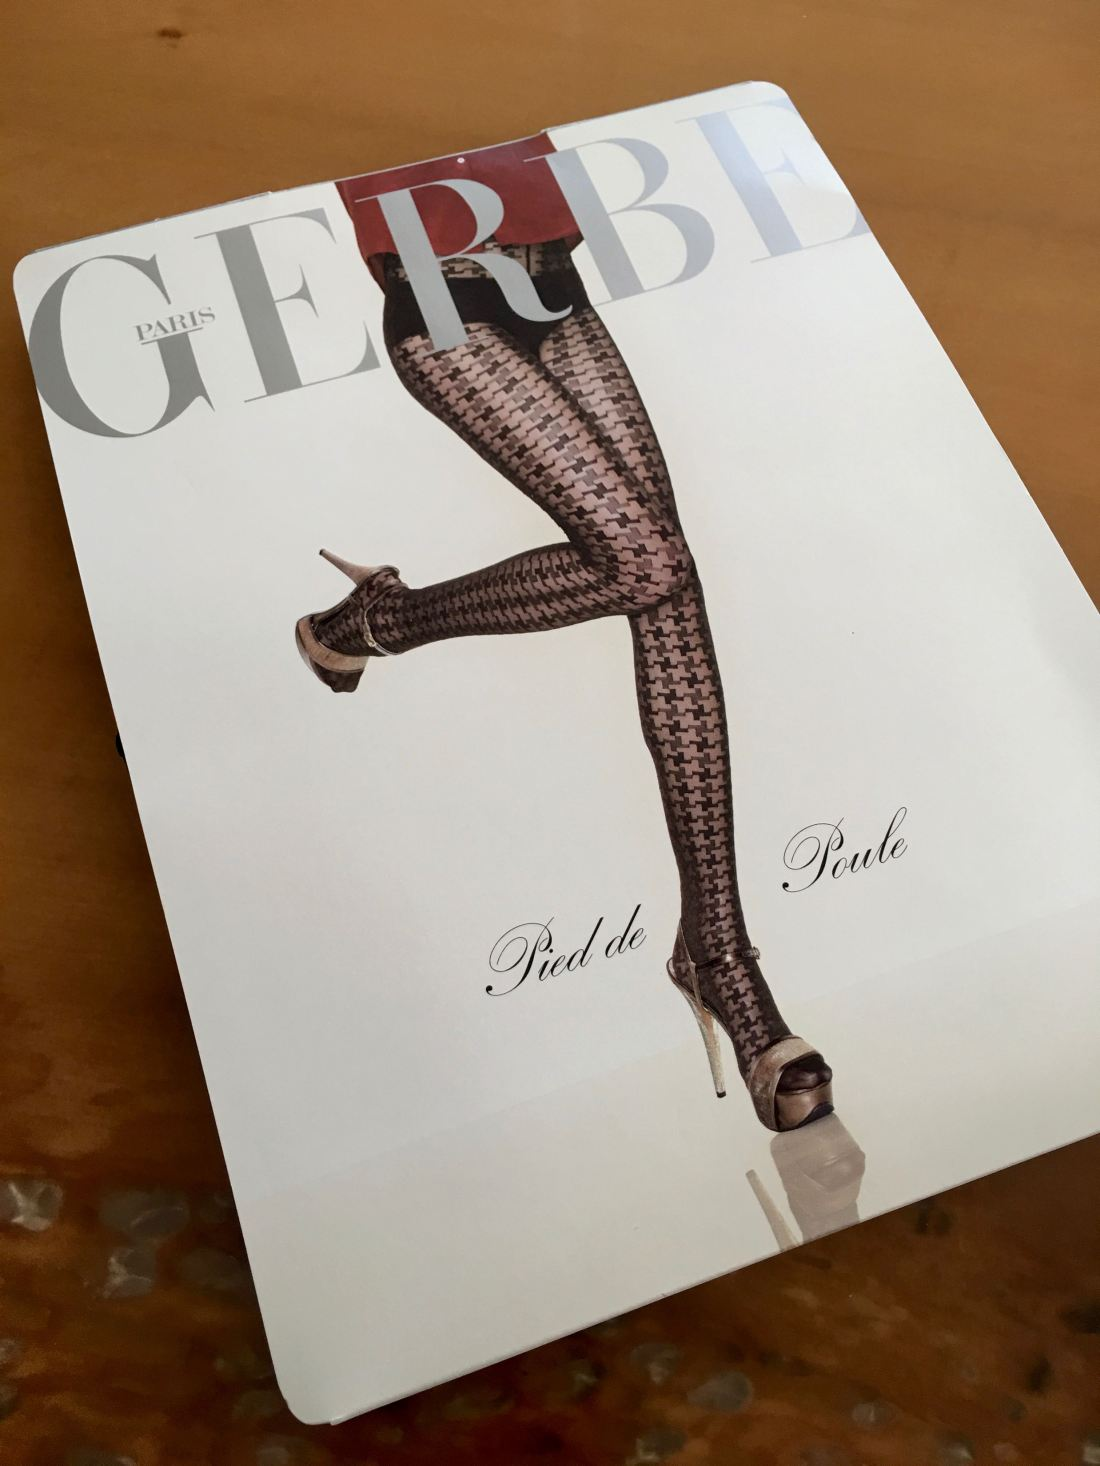 7916ed44a33 Review  Gerbe Pied de Poule Tights – i love hosiery